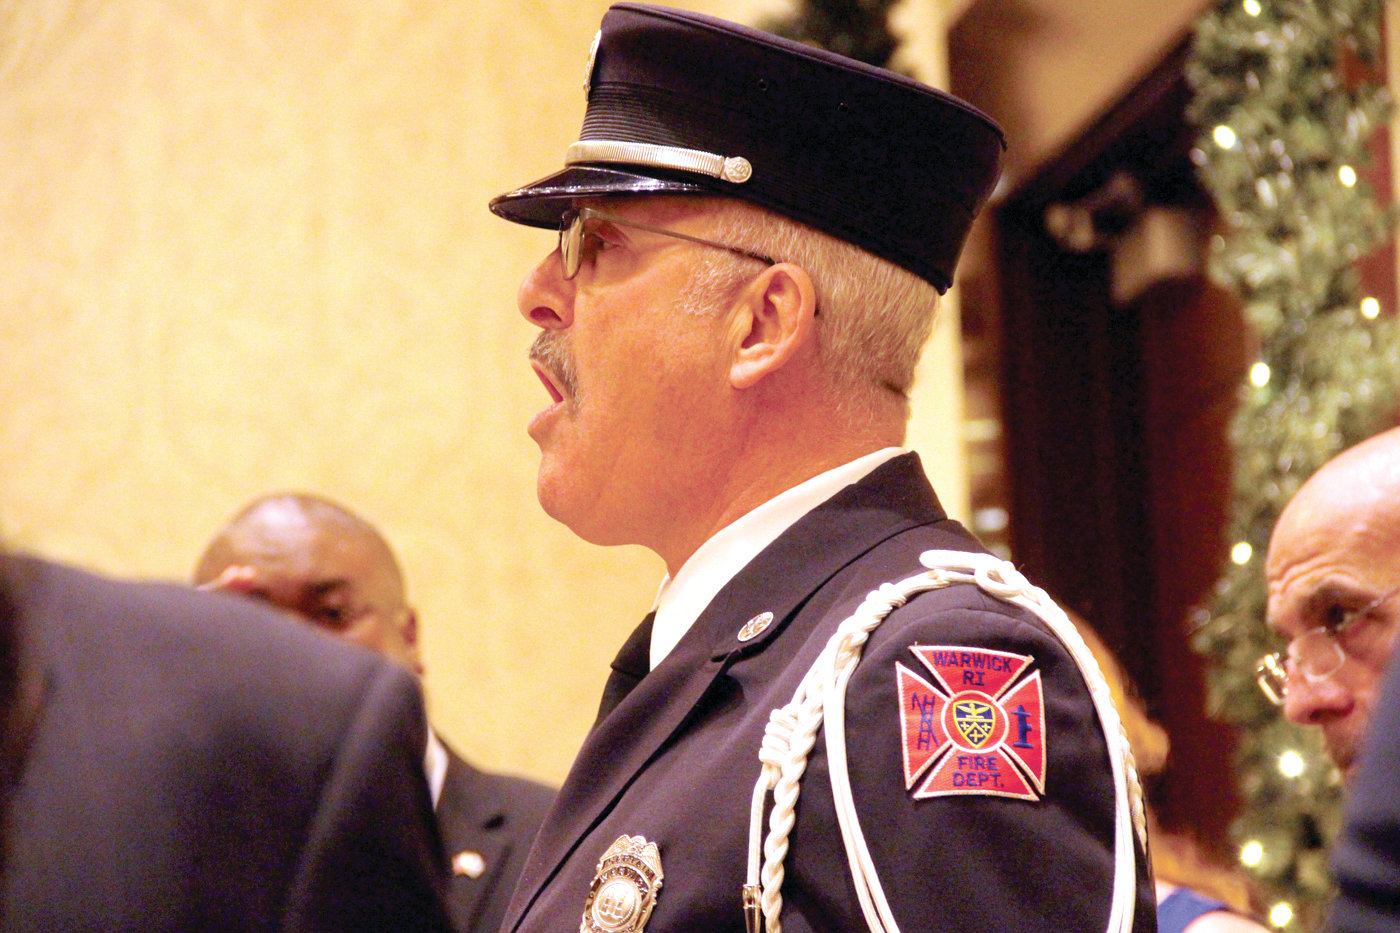 IT'S HIS GIG: Retired Warwick Fire Captain William Tyler, who is frequently called upon to sing the National Anthem, did so again at Tuesday's ceremony.